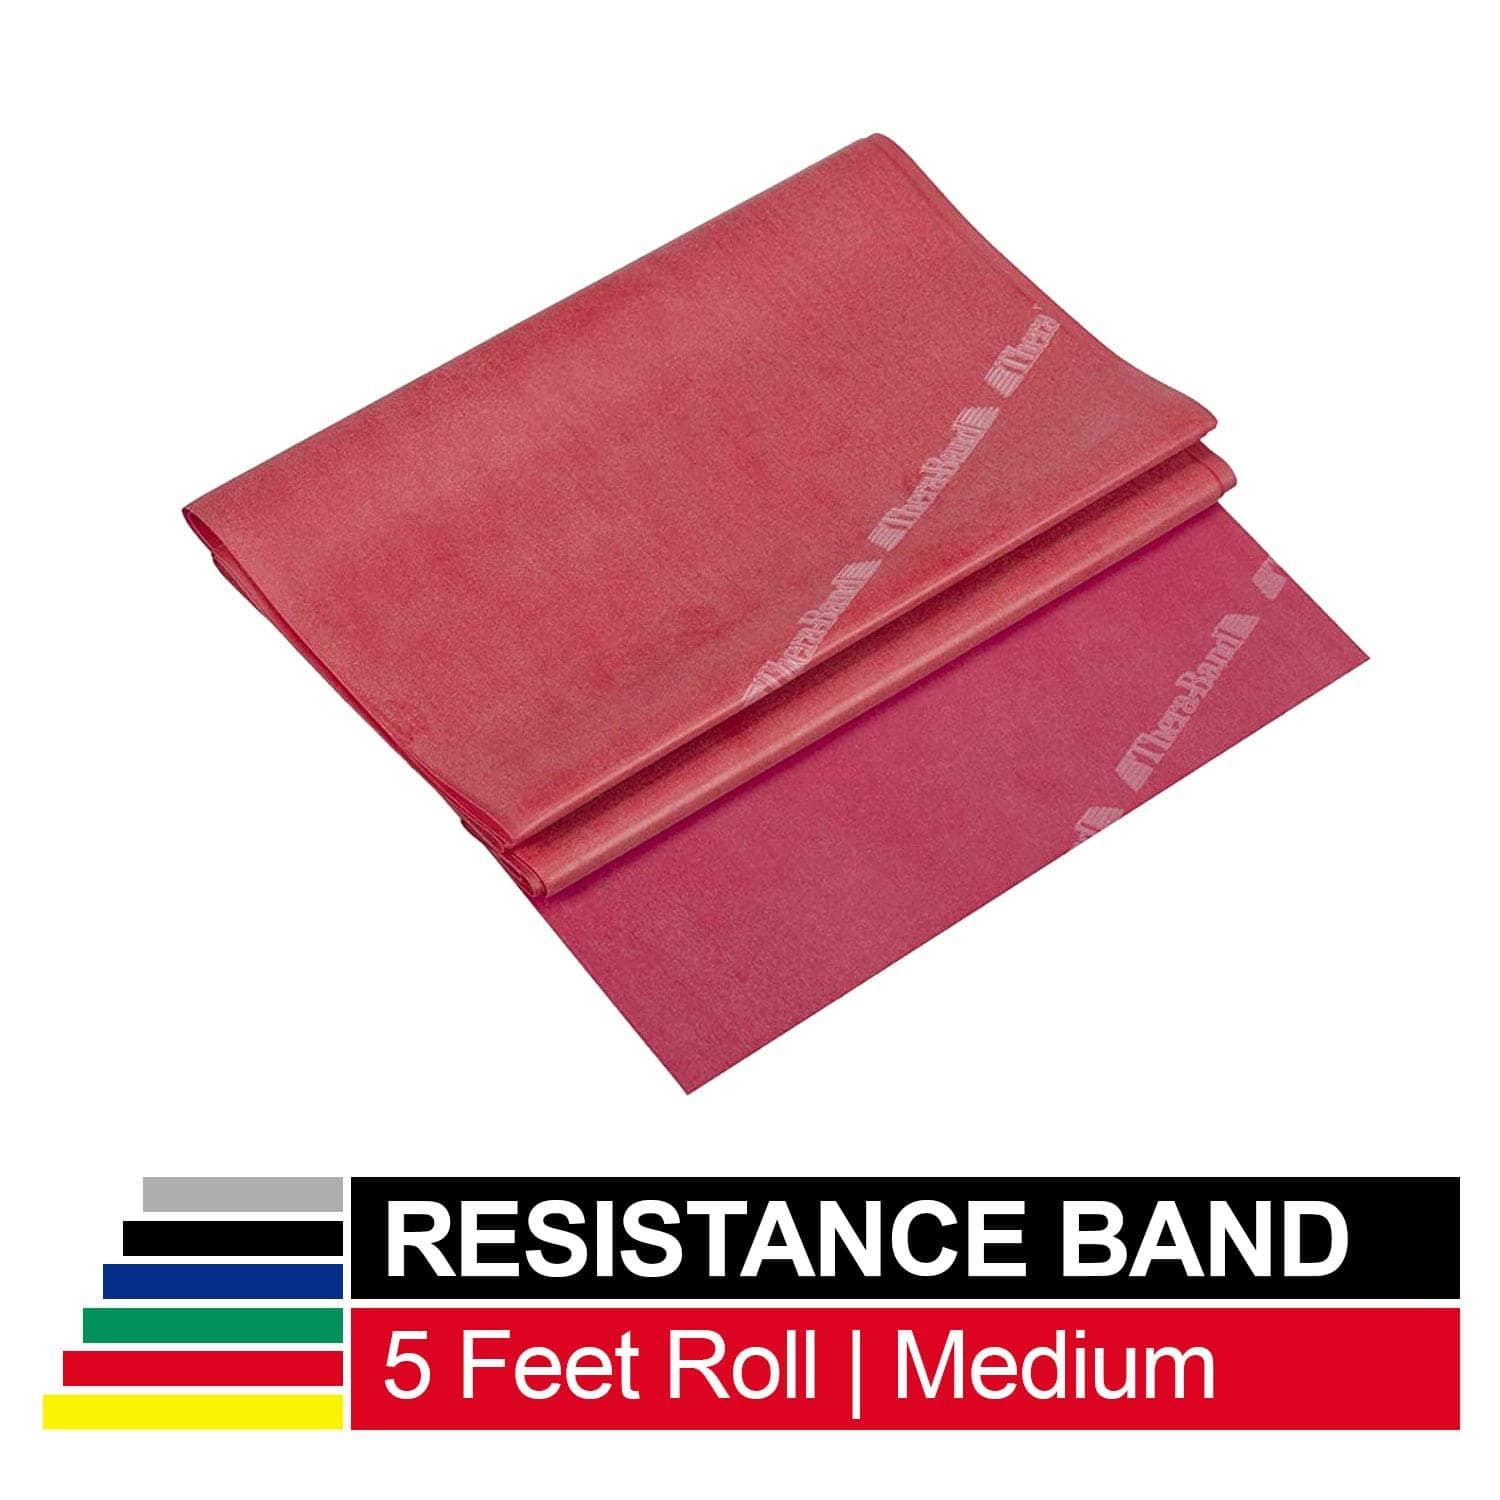 Amazon - Black Friday Deal: 20% Off TheraBand Resistance Bands & Kinesiology Tape + Free Shipping w/ Prime